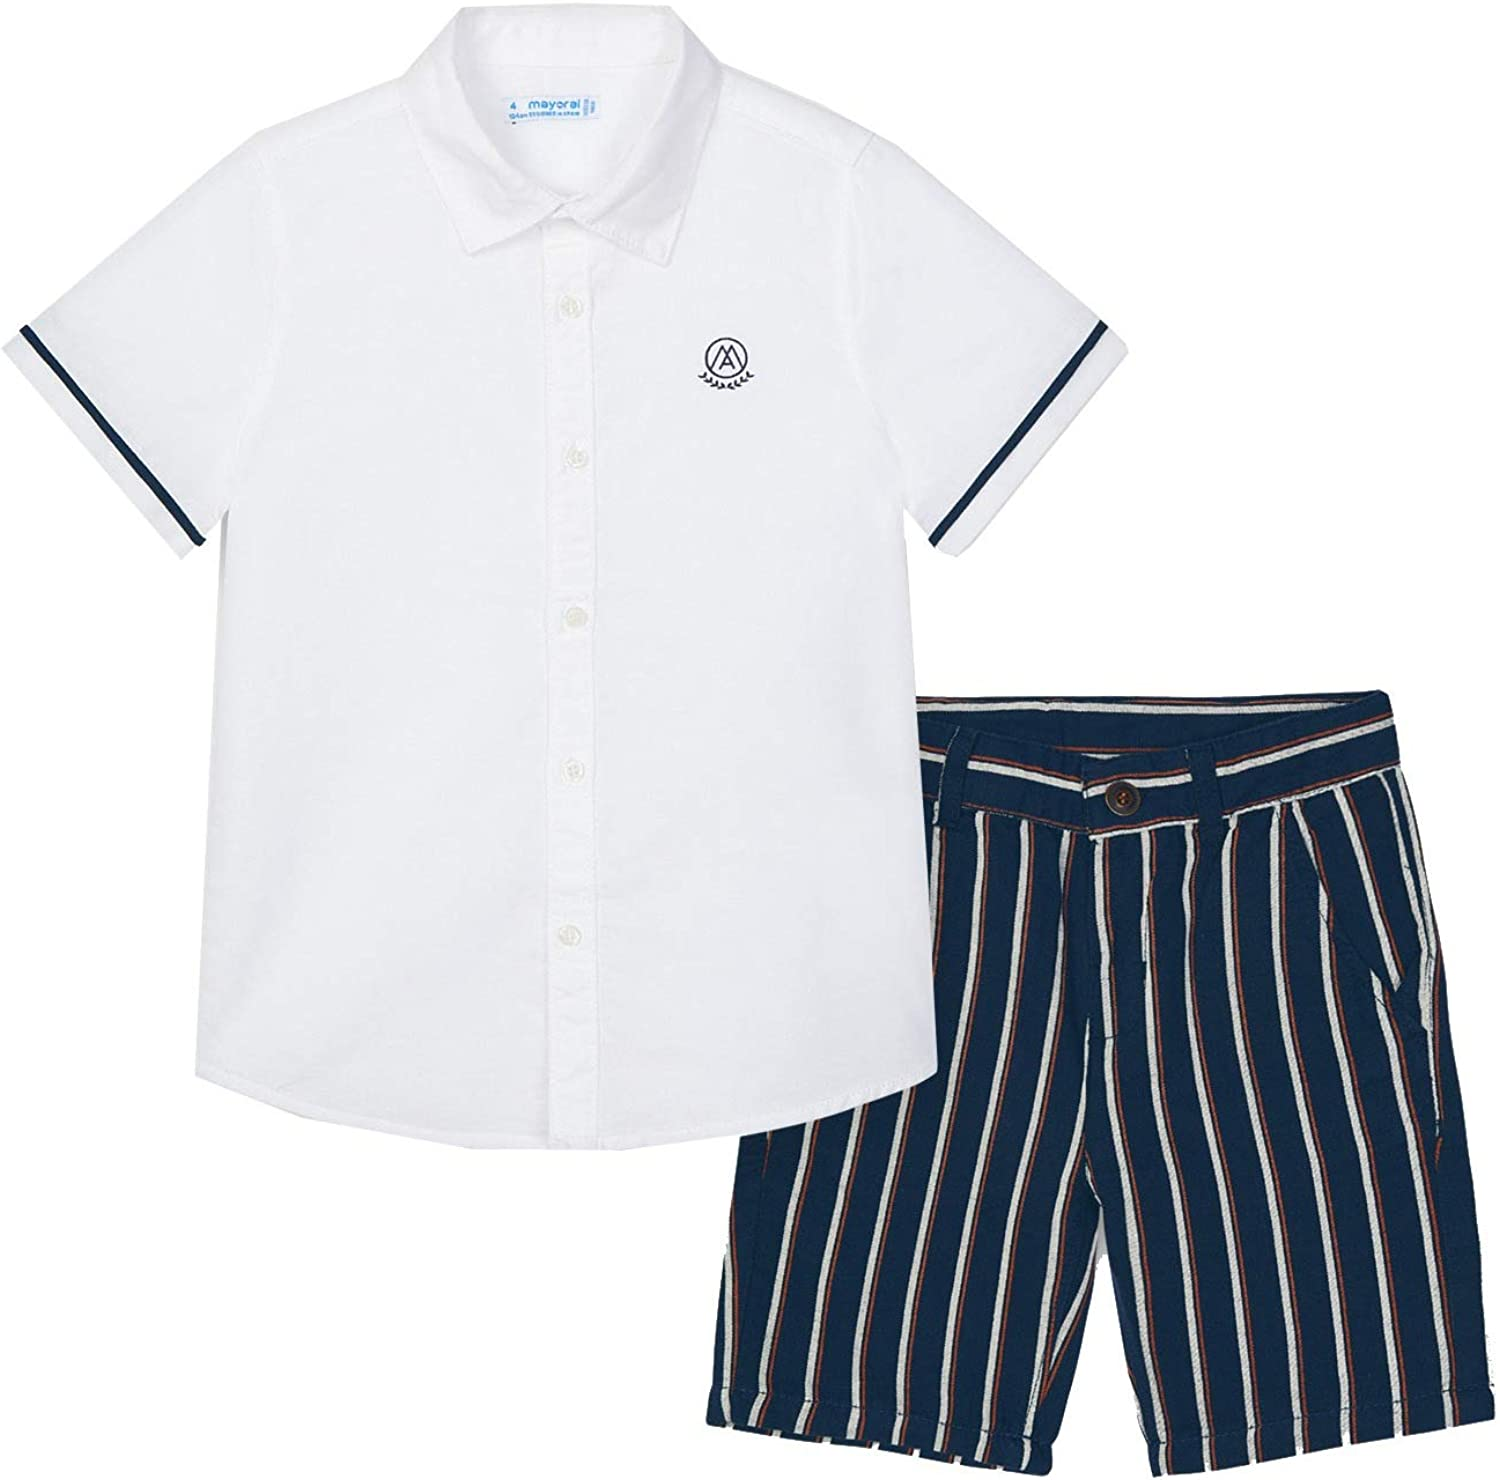 Mayoral - Linen Shirt and Short Navy 3244 for Reservation Fresno Mall Boys Set